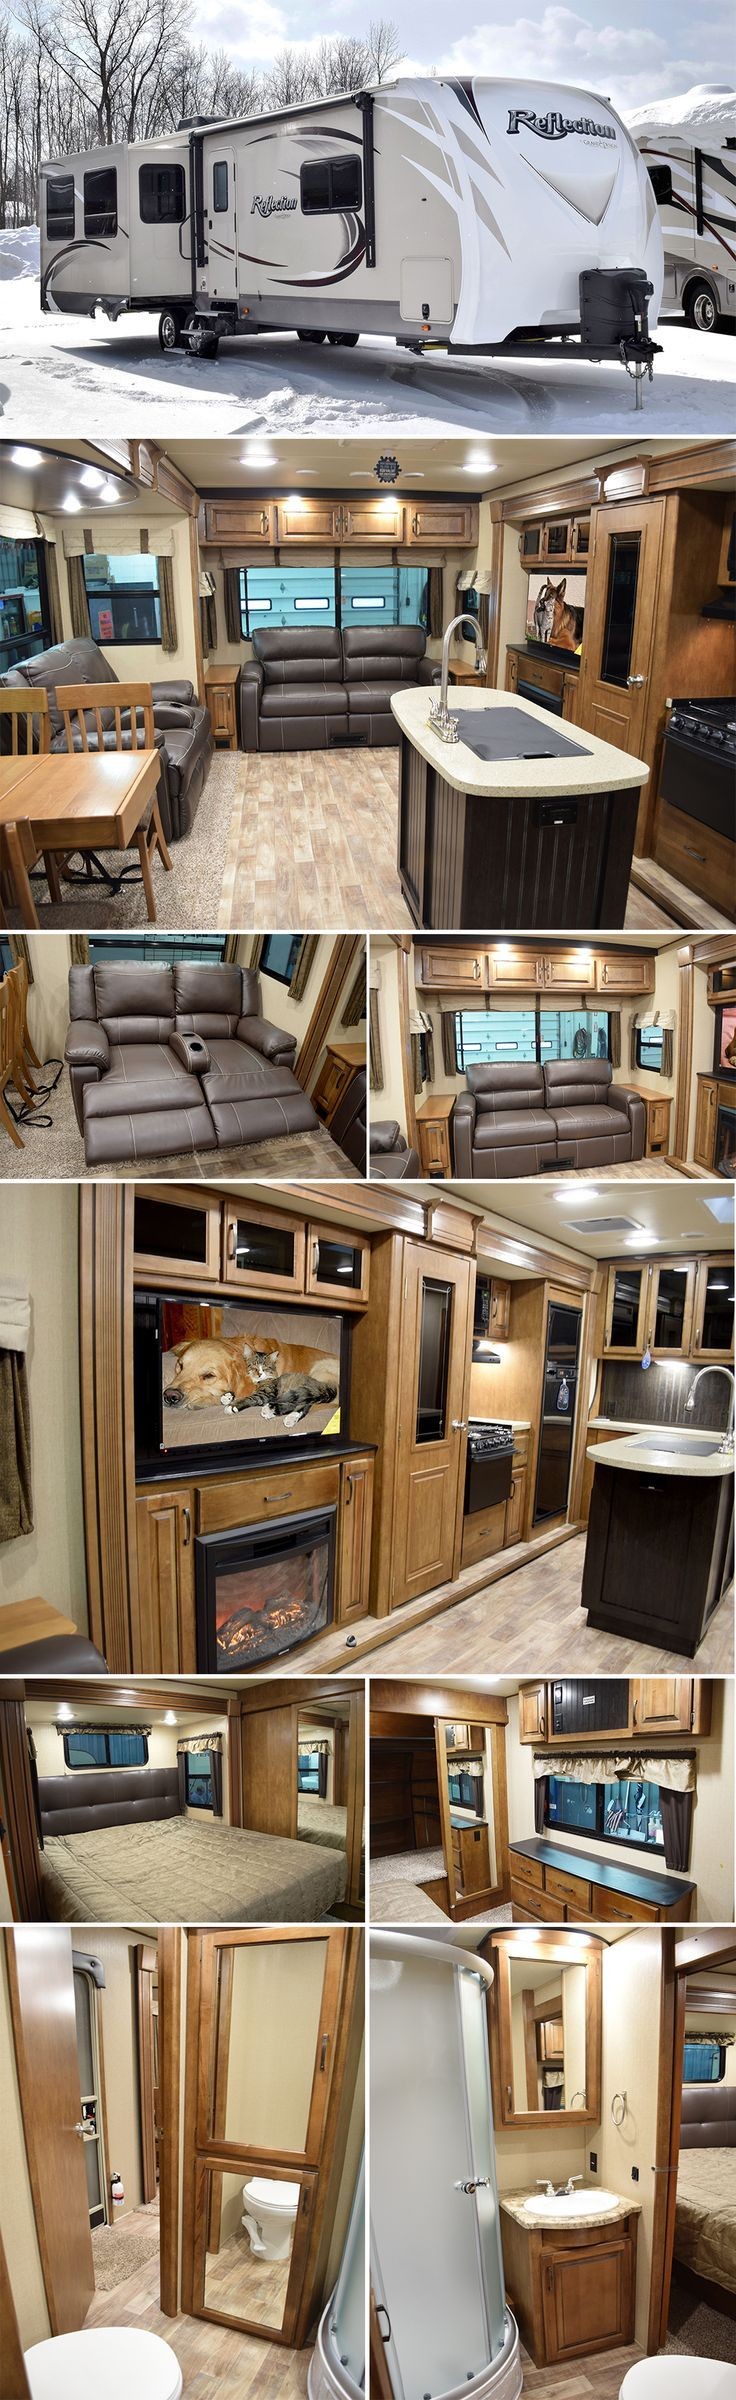 2015 Grand Design REFLECTION 313RLTS Travel Trailer. This new Reflection Travel Trailer RV is super light on mass, but super heavy on amenities! Engineered with the same uncompromised high-end style, convenience, towability and legendary Grand Design RV quality into a super lightweight package that is easily towed by a half-ton truck!